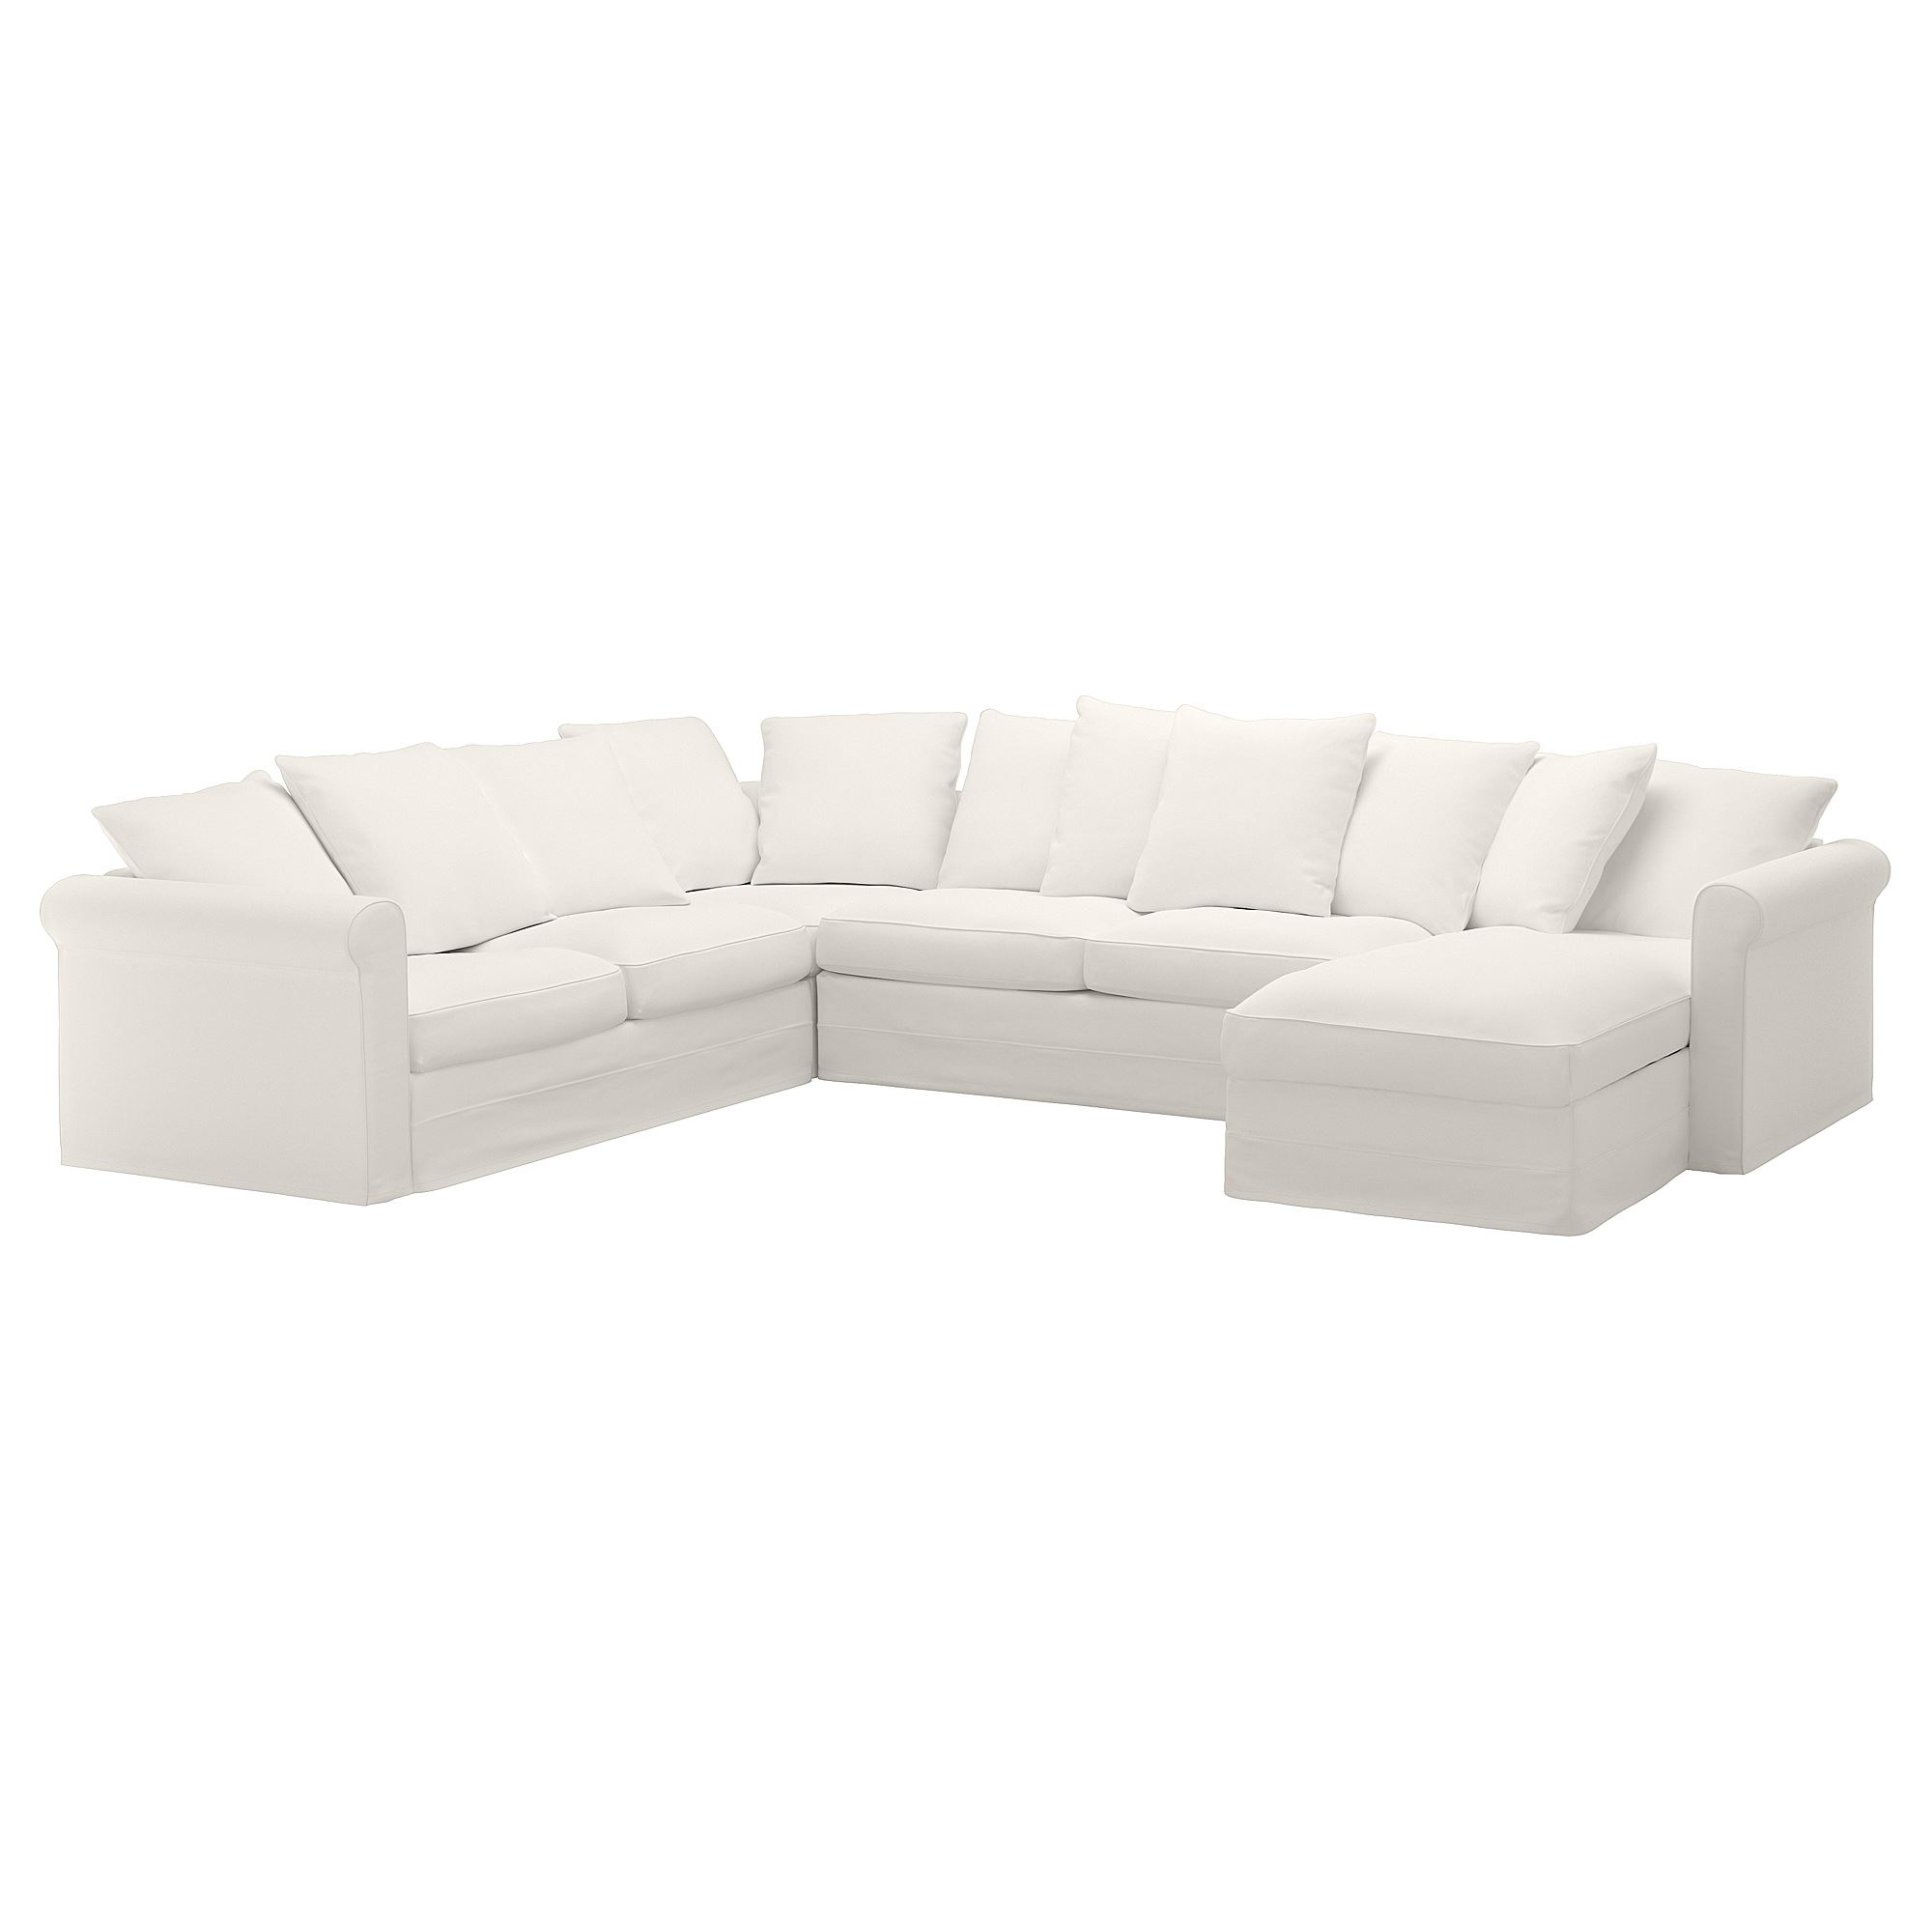 Gr 214 Nlid Corner Sofa Bed 5 Seat And Chaise Longue Inseros